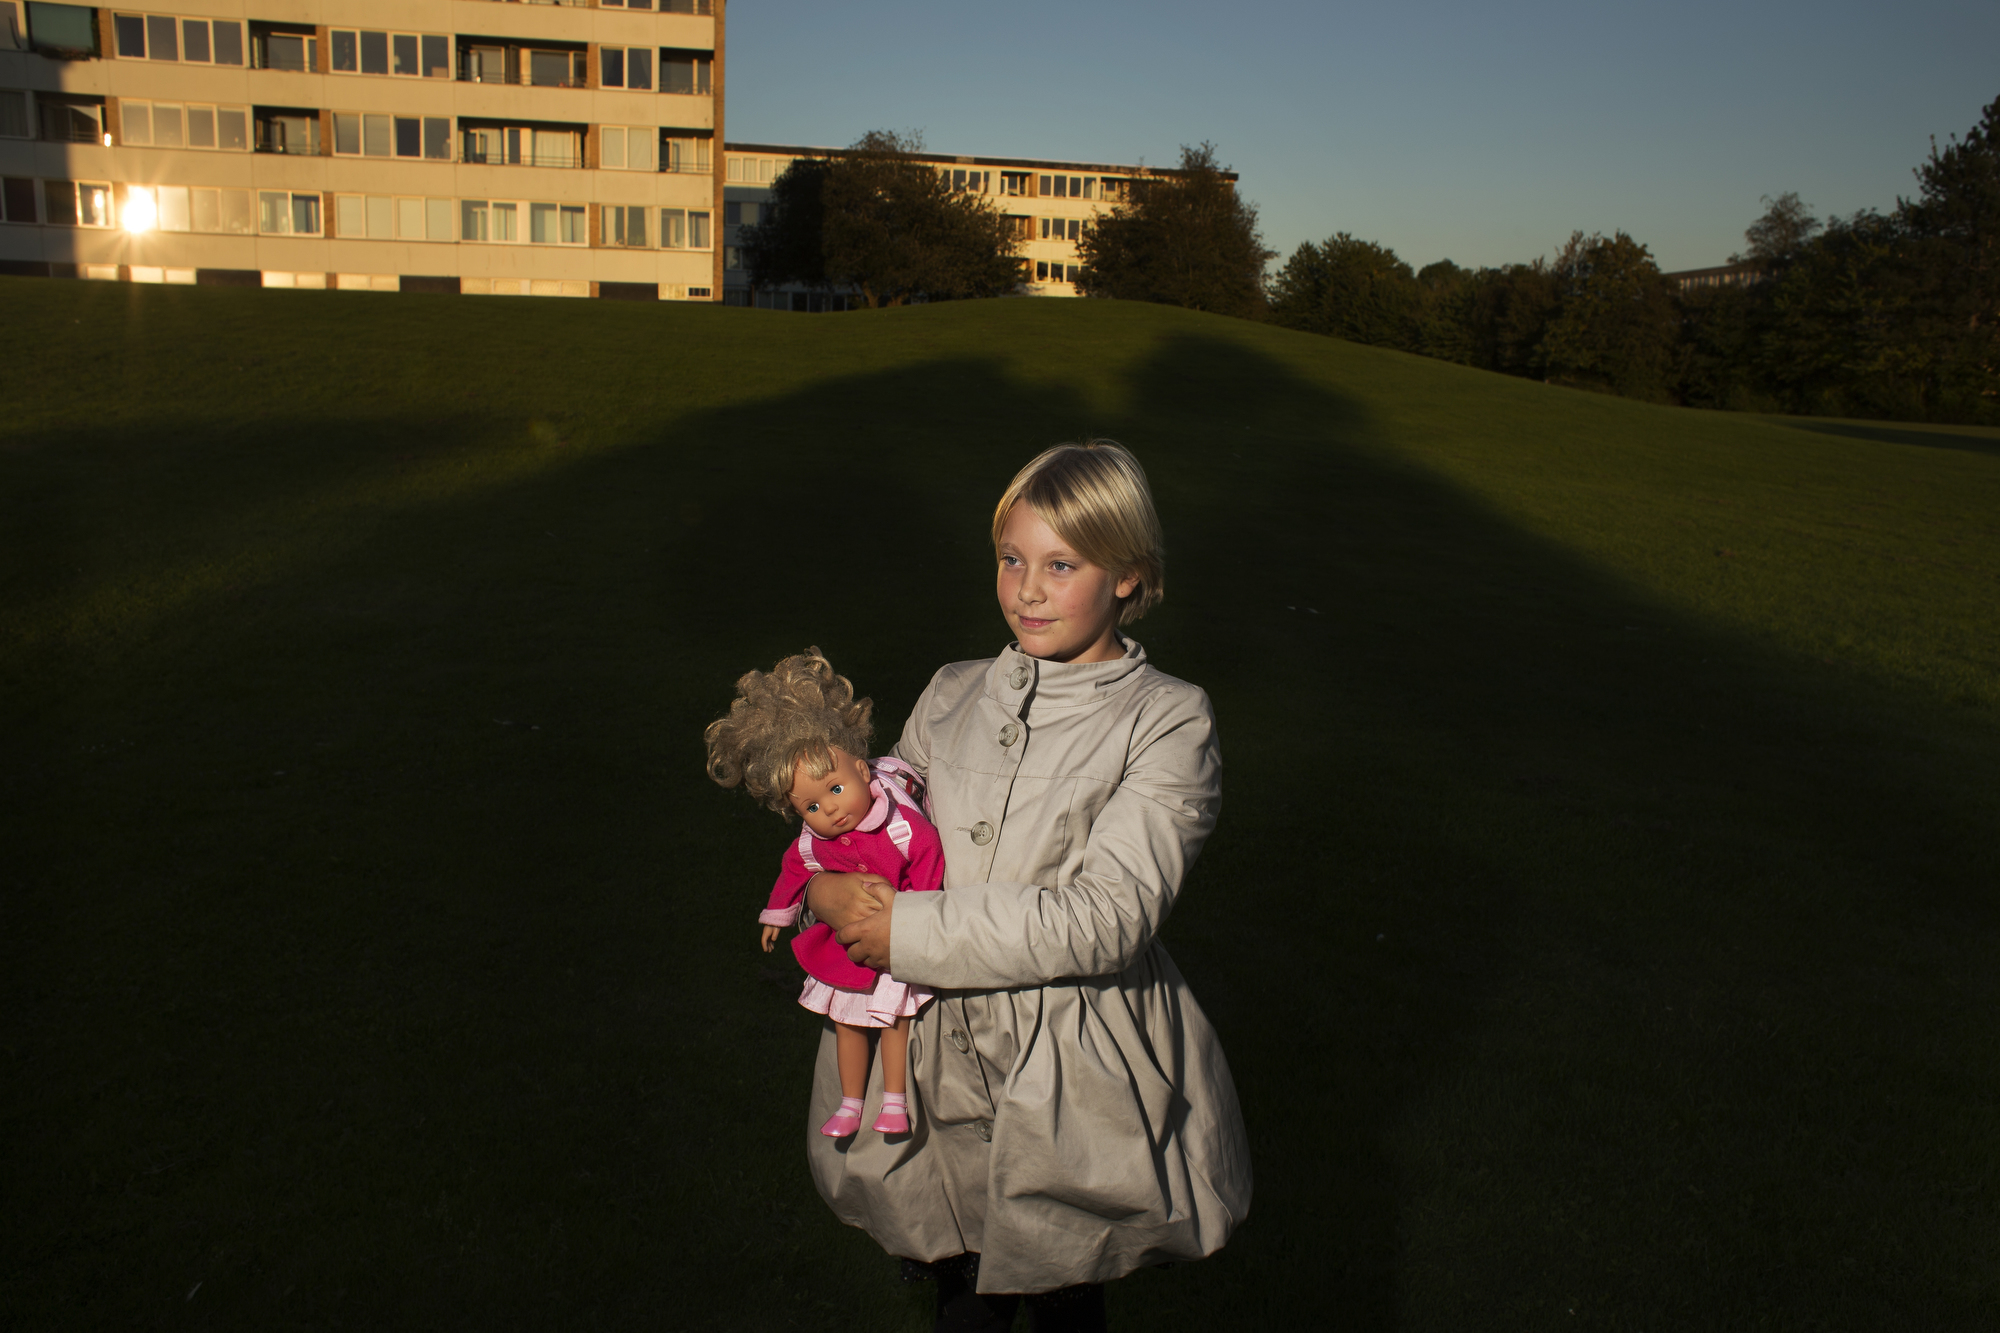 Martha Holt Johansen, 9, of Aarhus, Denmark, holds her doll outside of her apartment complex where she lives with her mother.